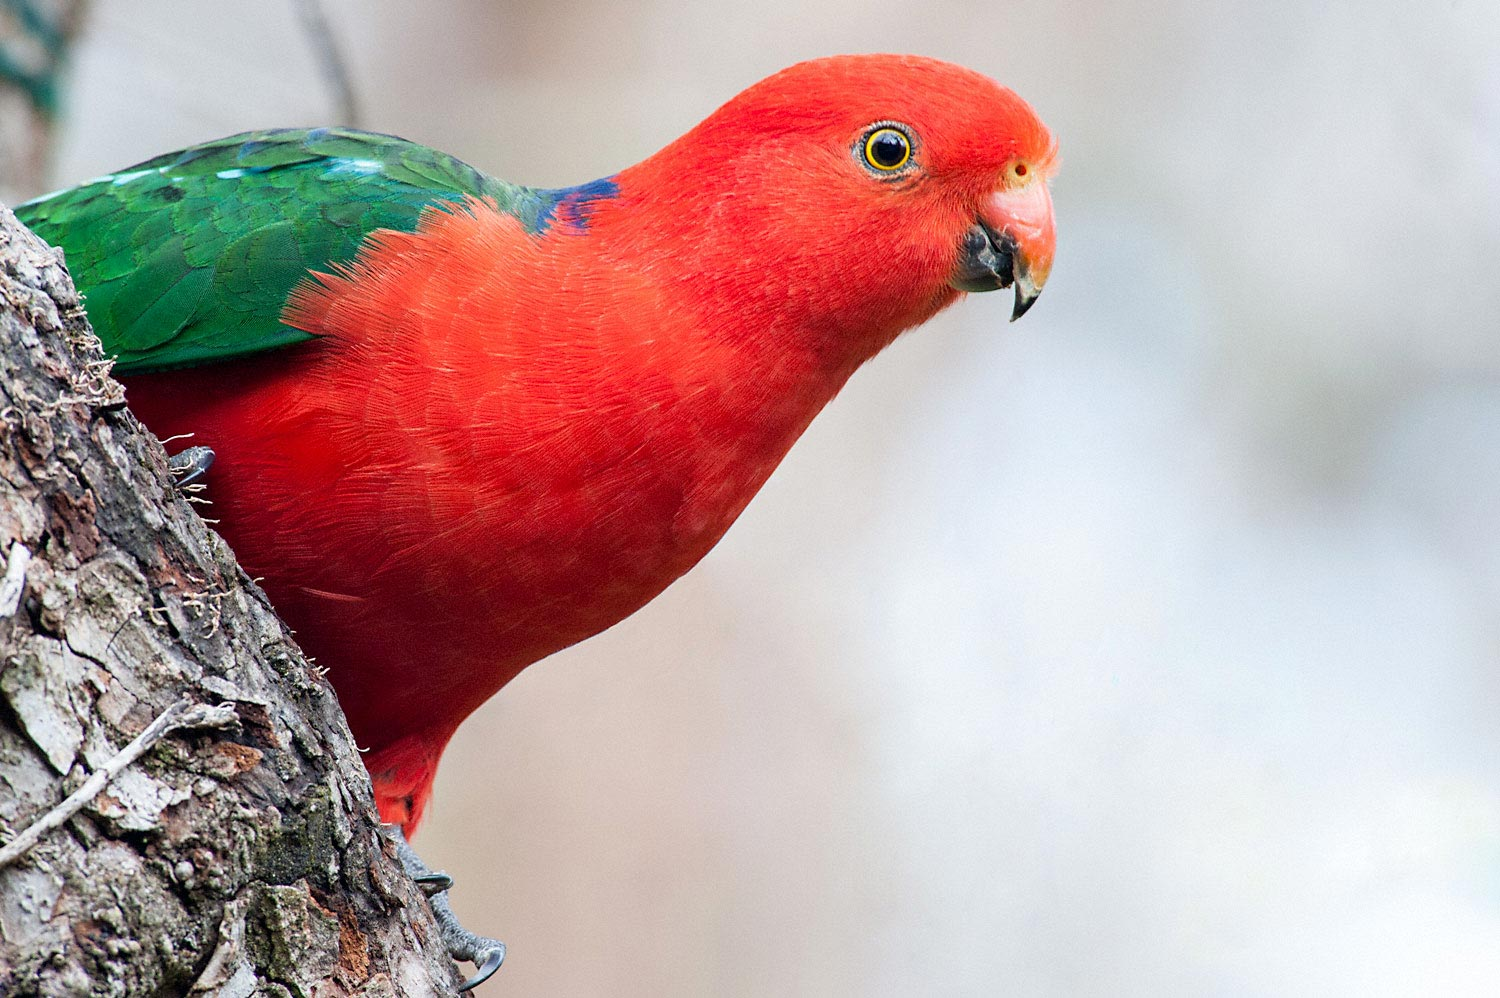 Warren-Hinder-LR-King-Parrot.jpg